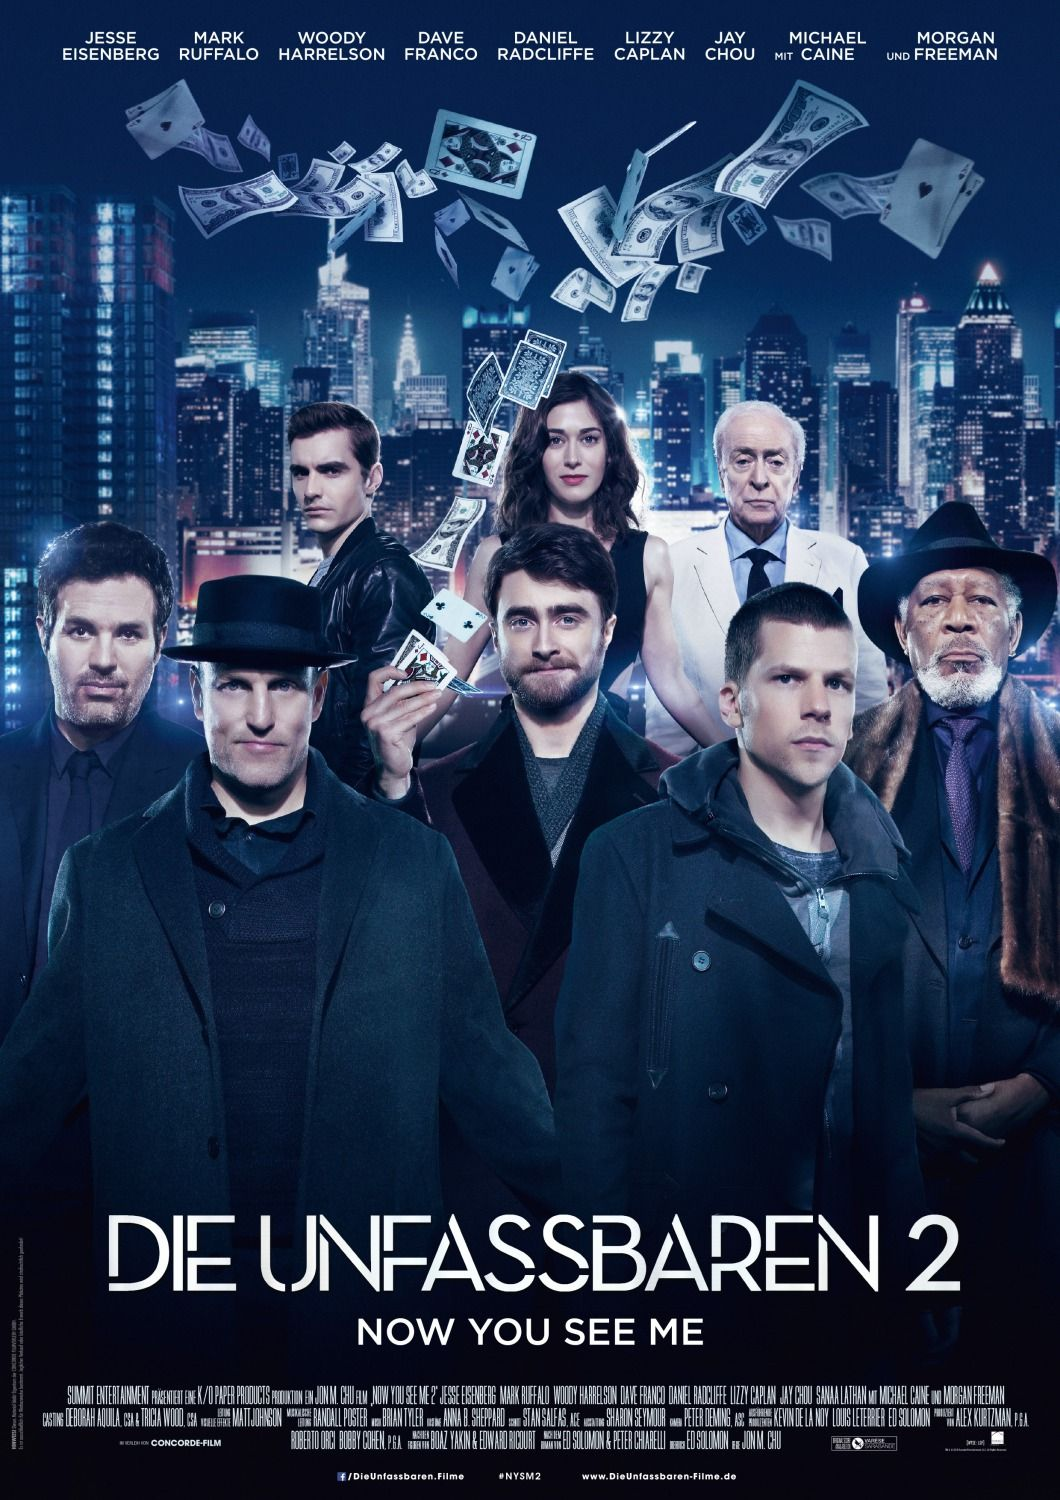 now you see me part 2 full movie download